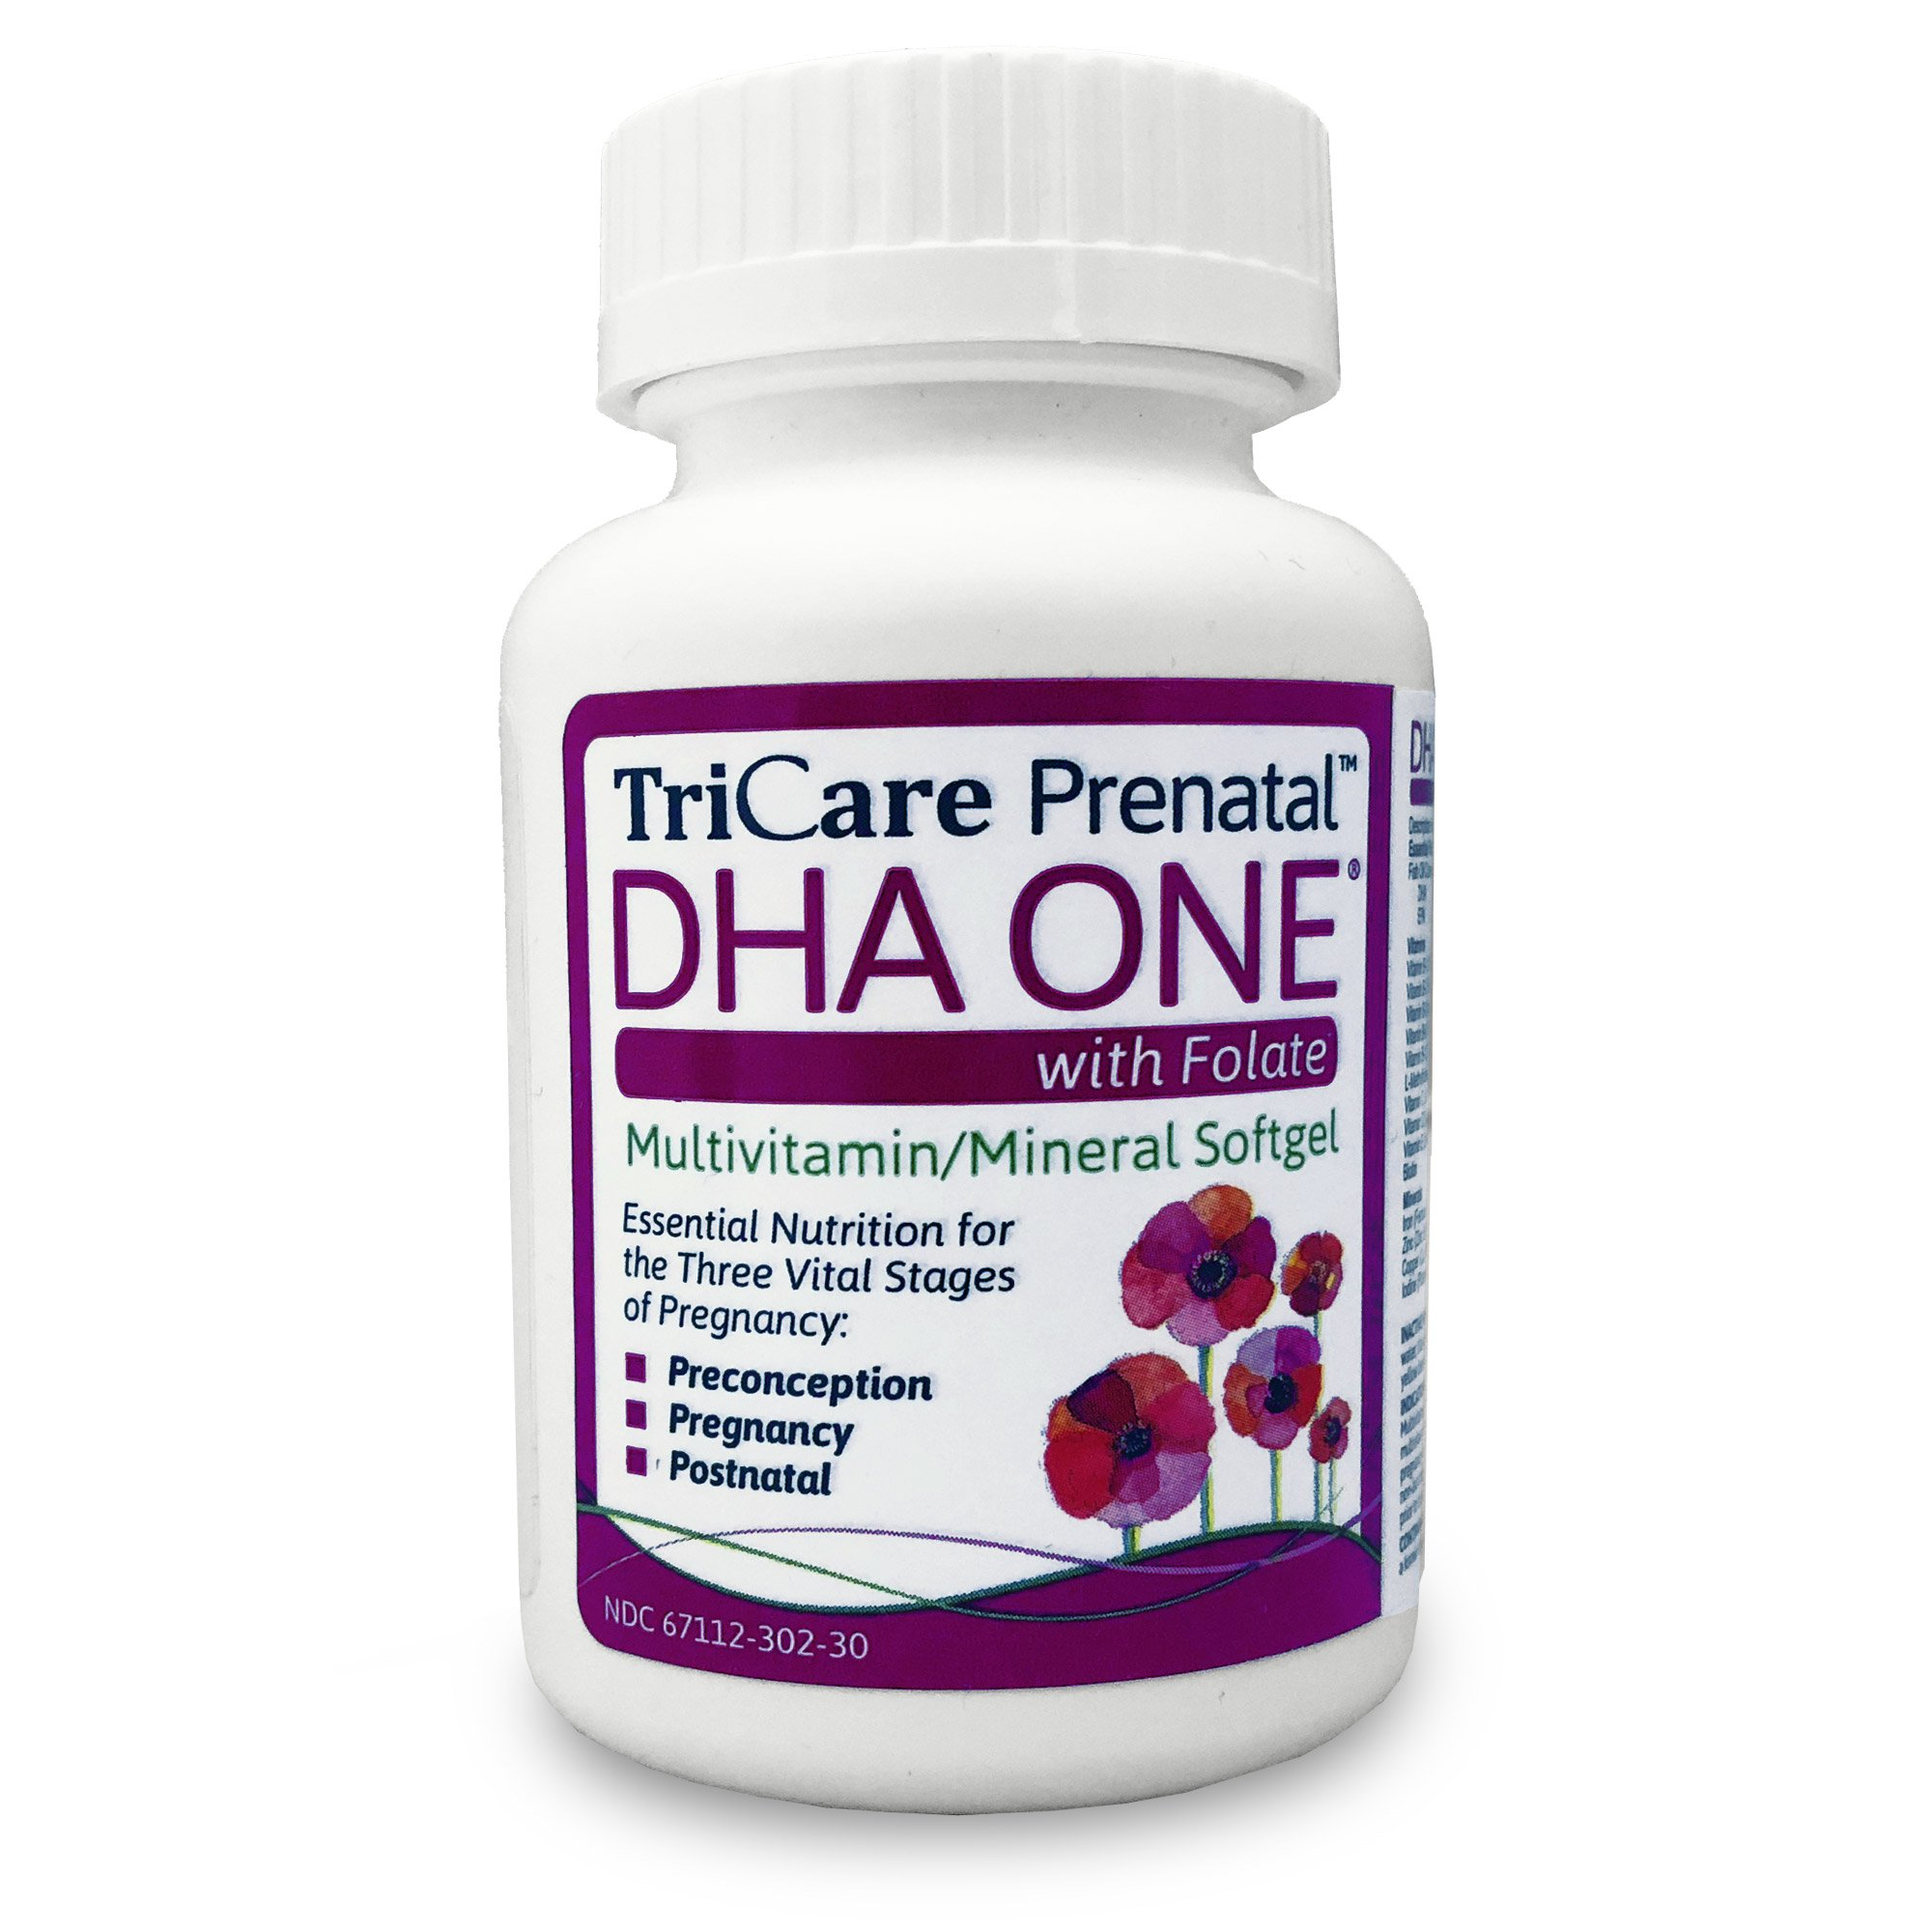 TriCare PrenatalTM DHA ONE with Folate - Prenatal Vitamins with DHA and L-Methylfolate Plus 14 Vitamins and Minerals - Non-GMO and Gluten Free - 30 Count